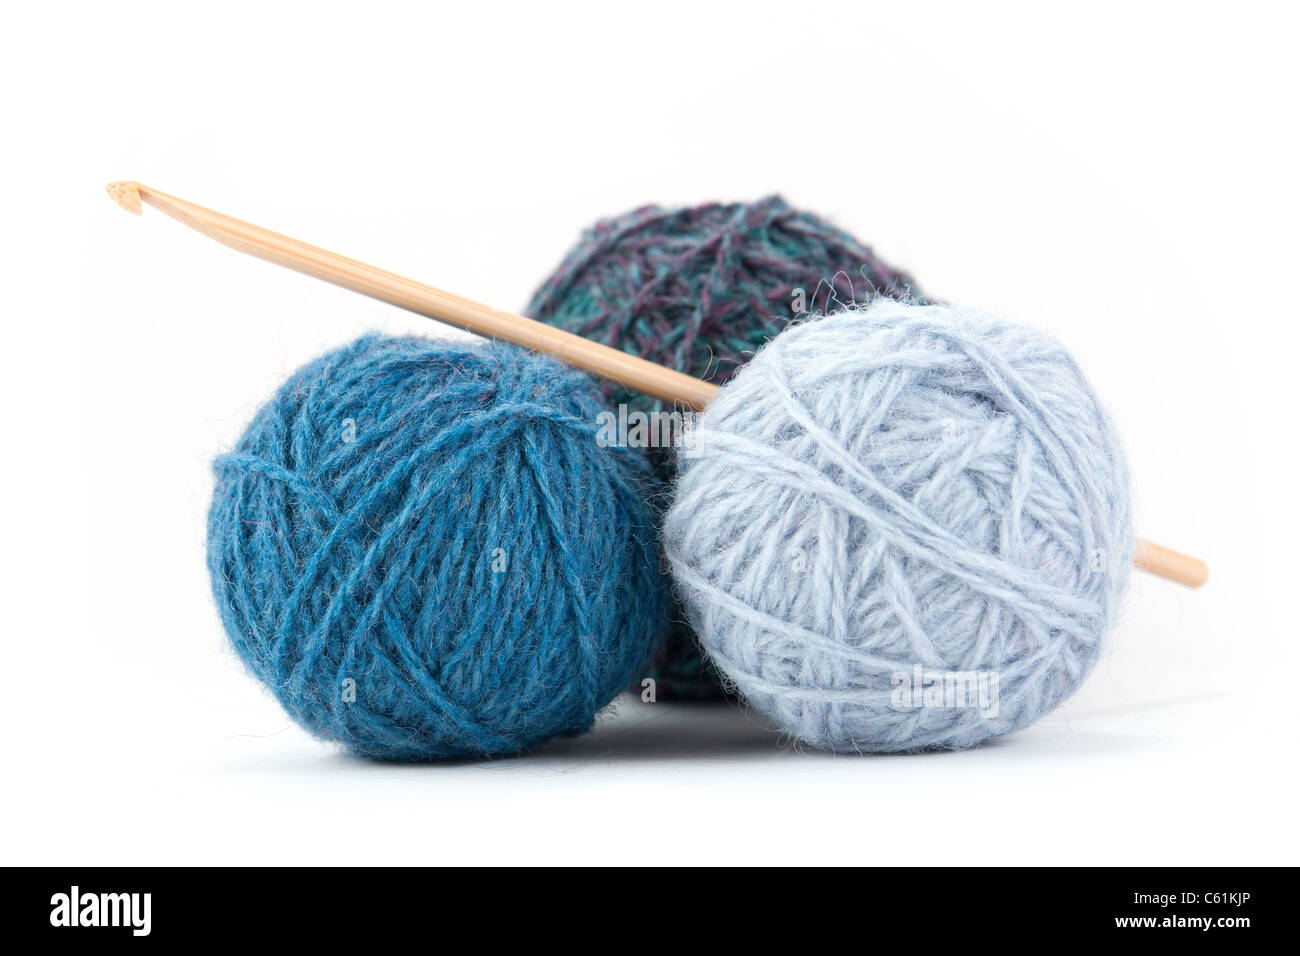 A couple of yarn balls with crochet hook - Stock Image